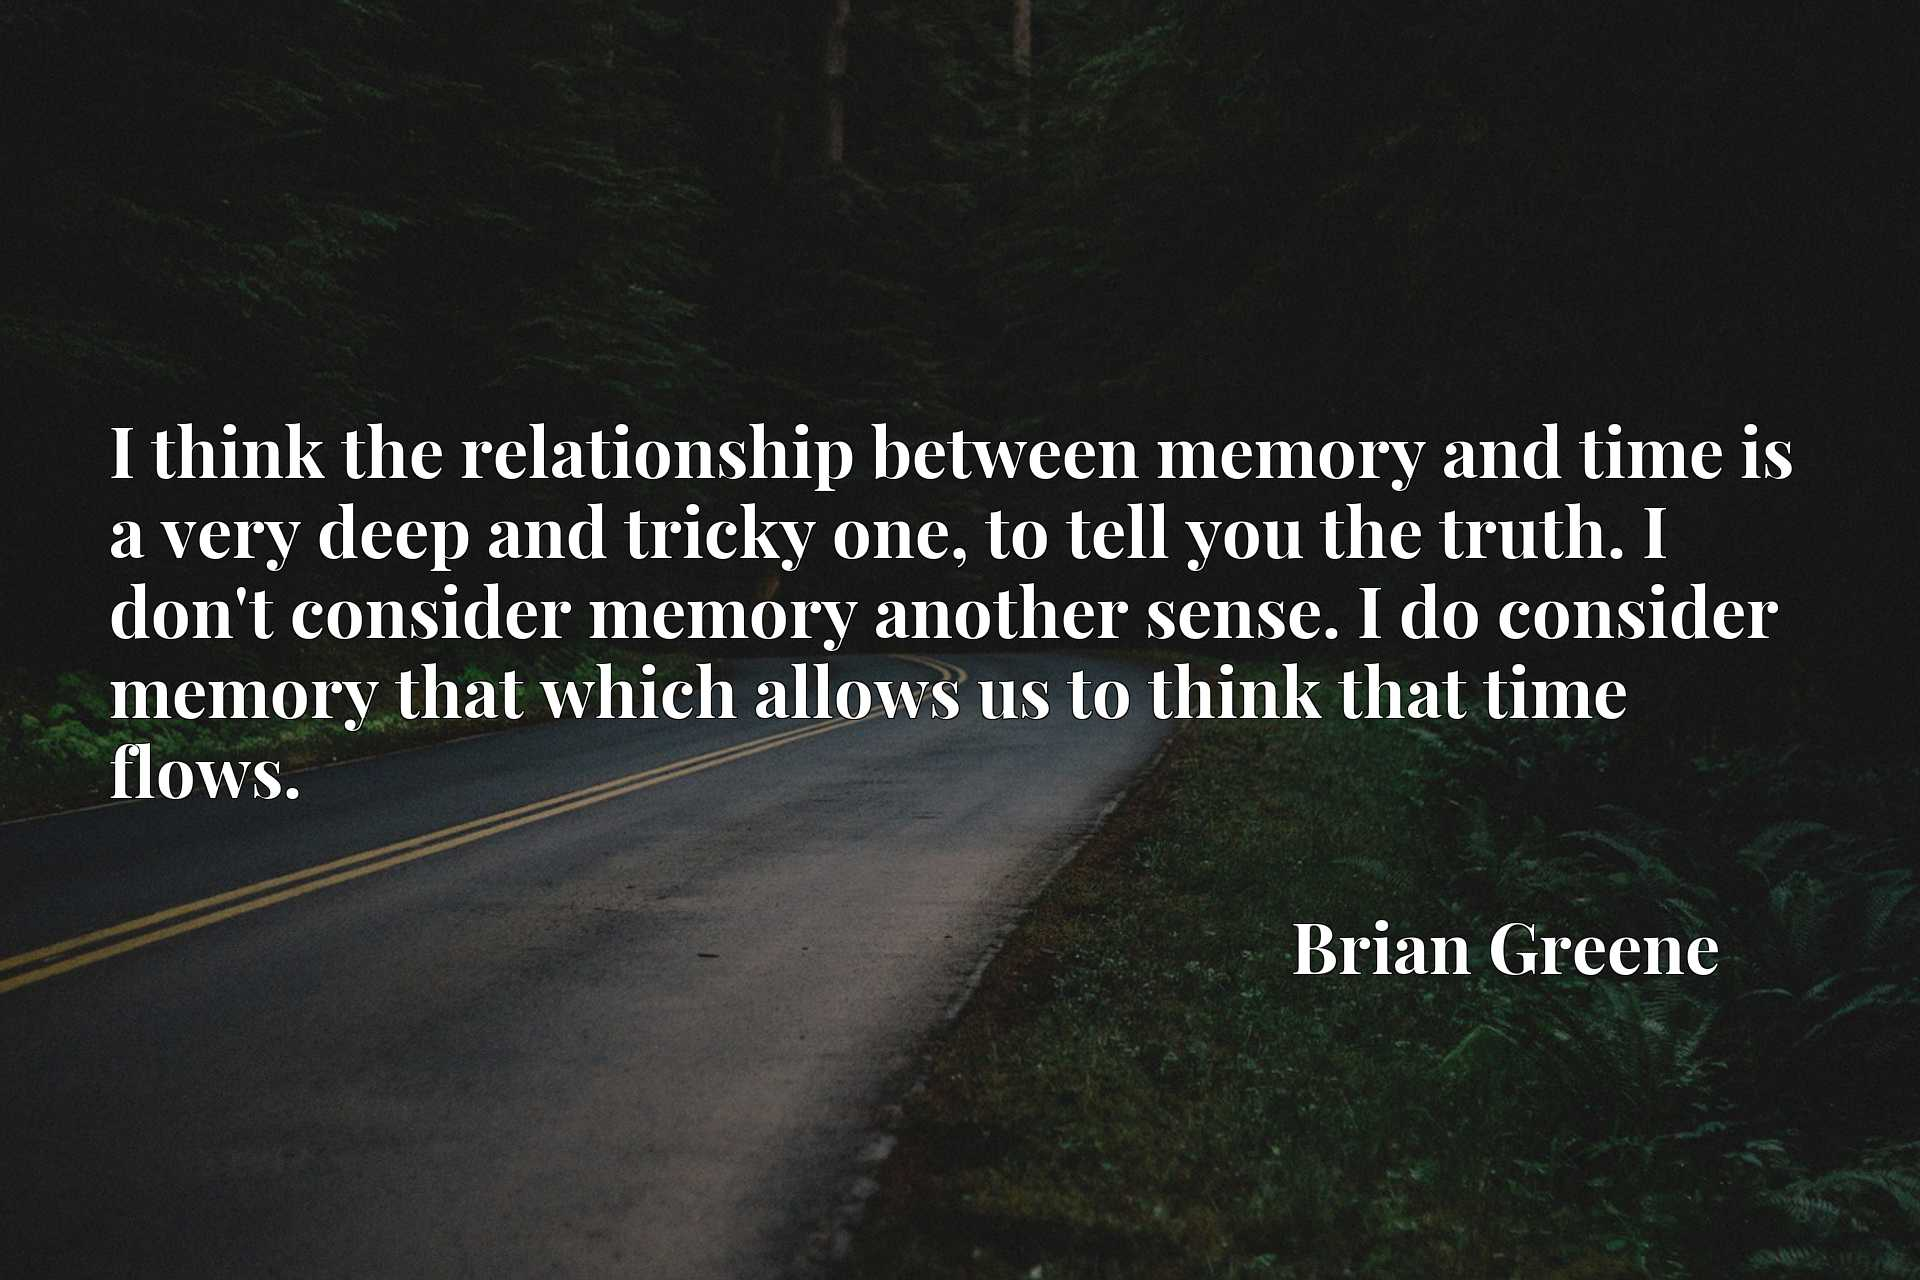 I think the relationship between memory and time is a very deep and tricky one, to tell you the truth. I don't consider memory another sense. I do consider memory that which allows us to think that time flows.